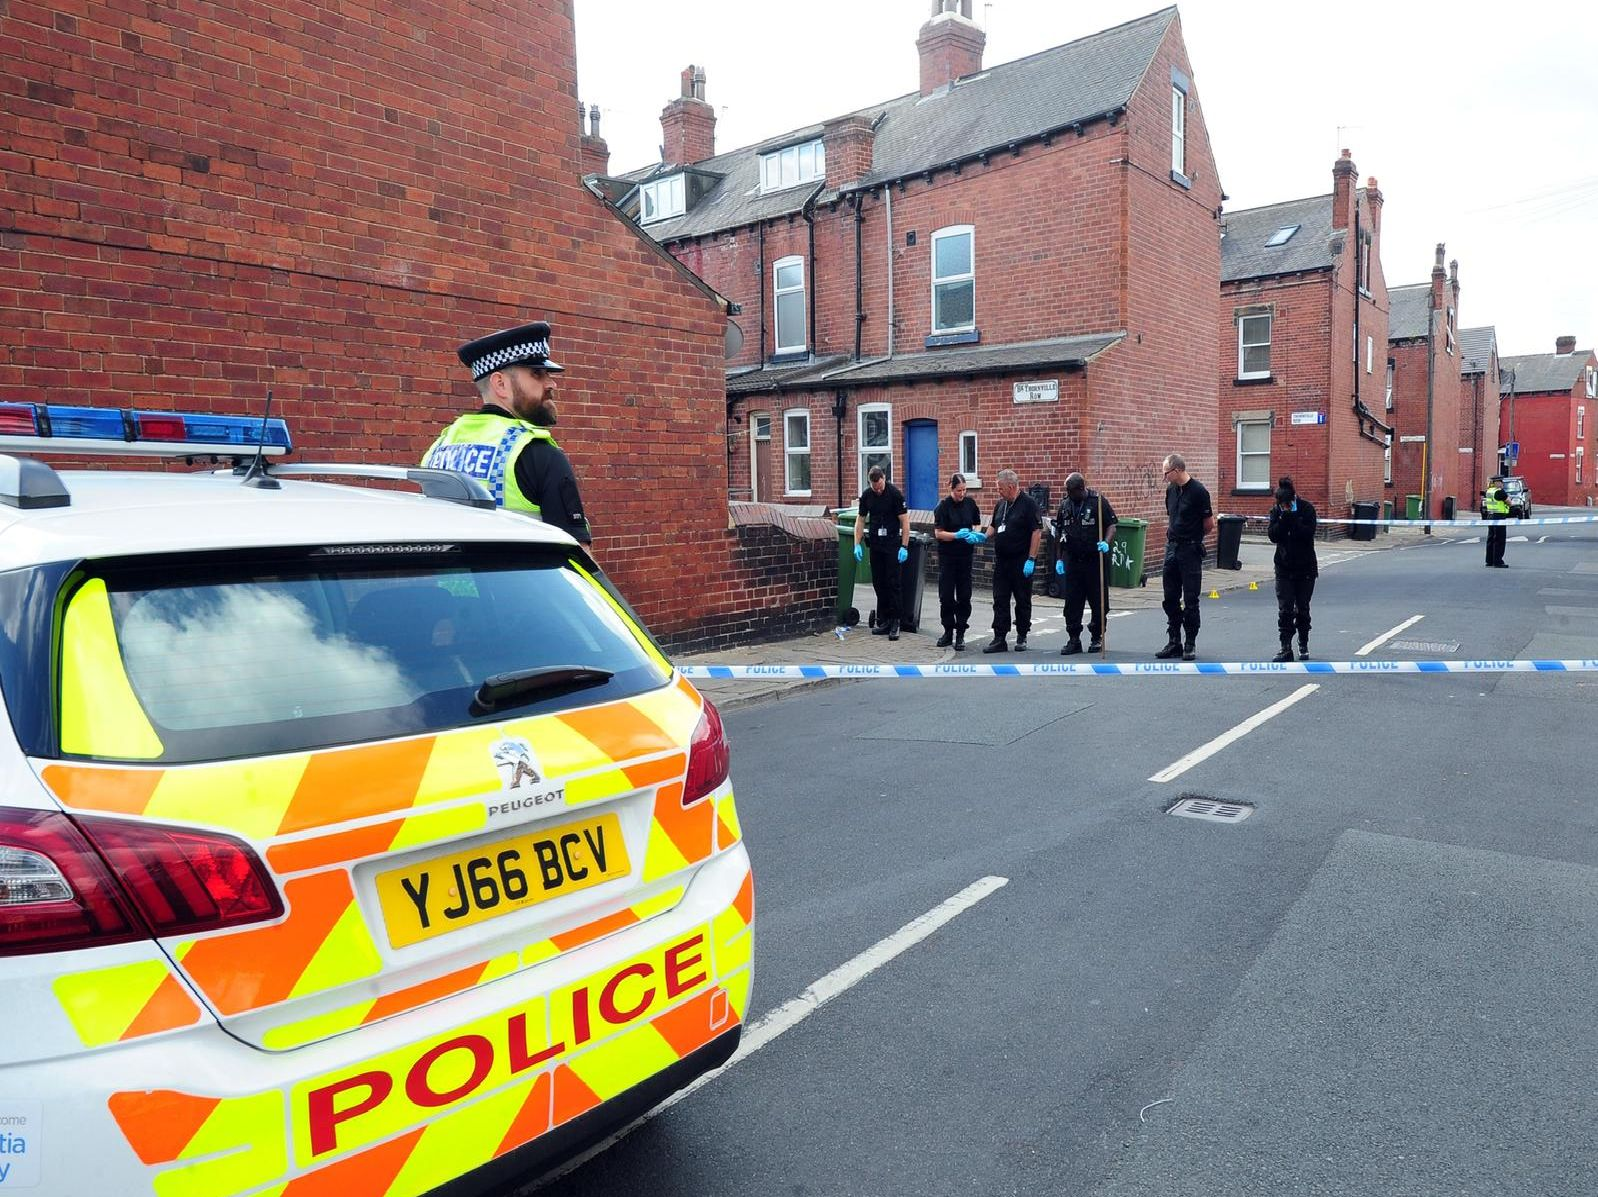 Police reveal the 10 worst antisocial behaviour hotspots in Leeds for spring 2019